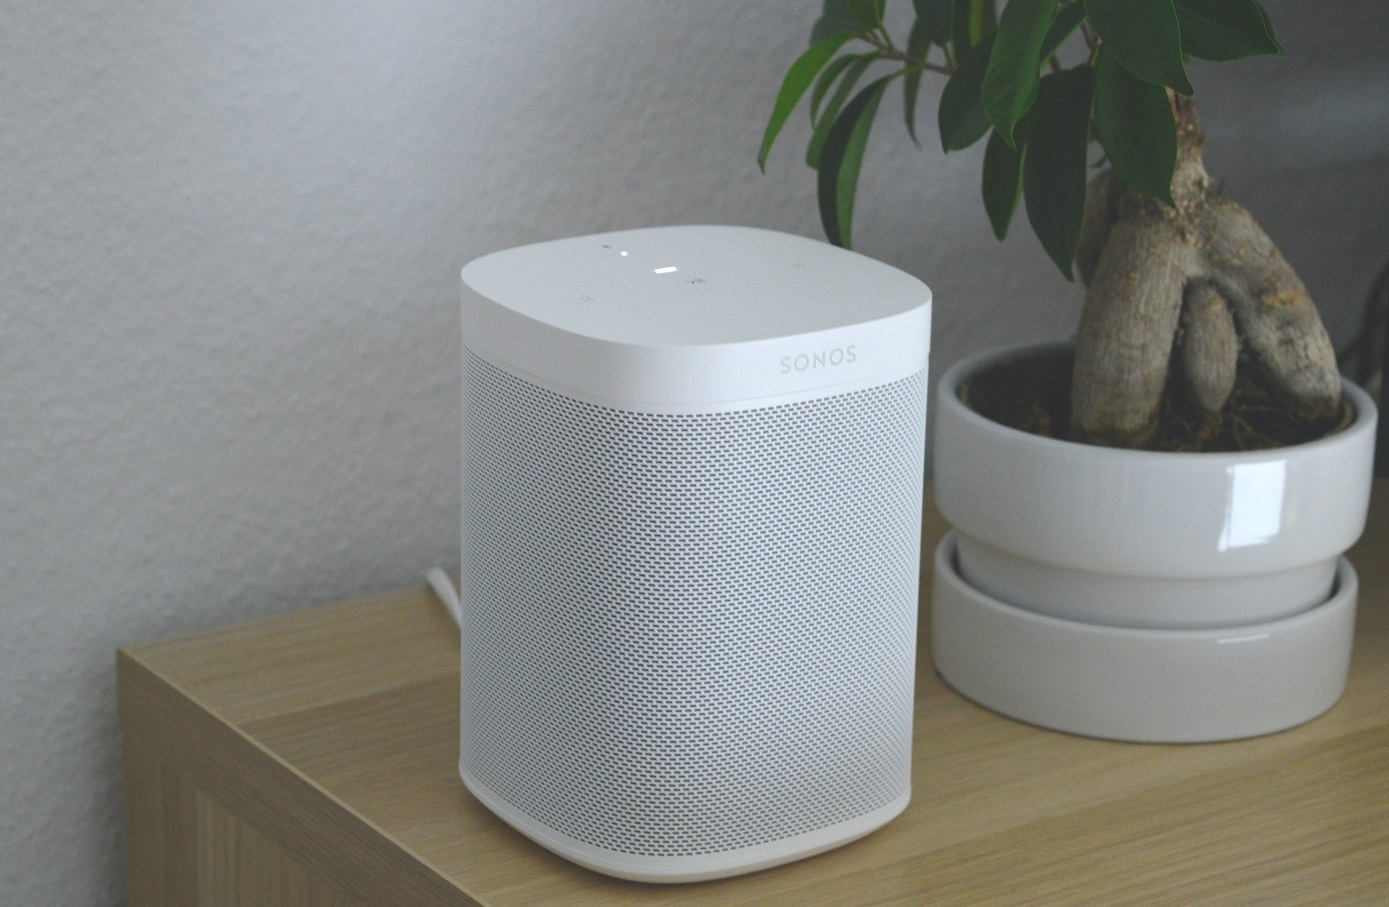 Google Nest Audio vs Sonos One